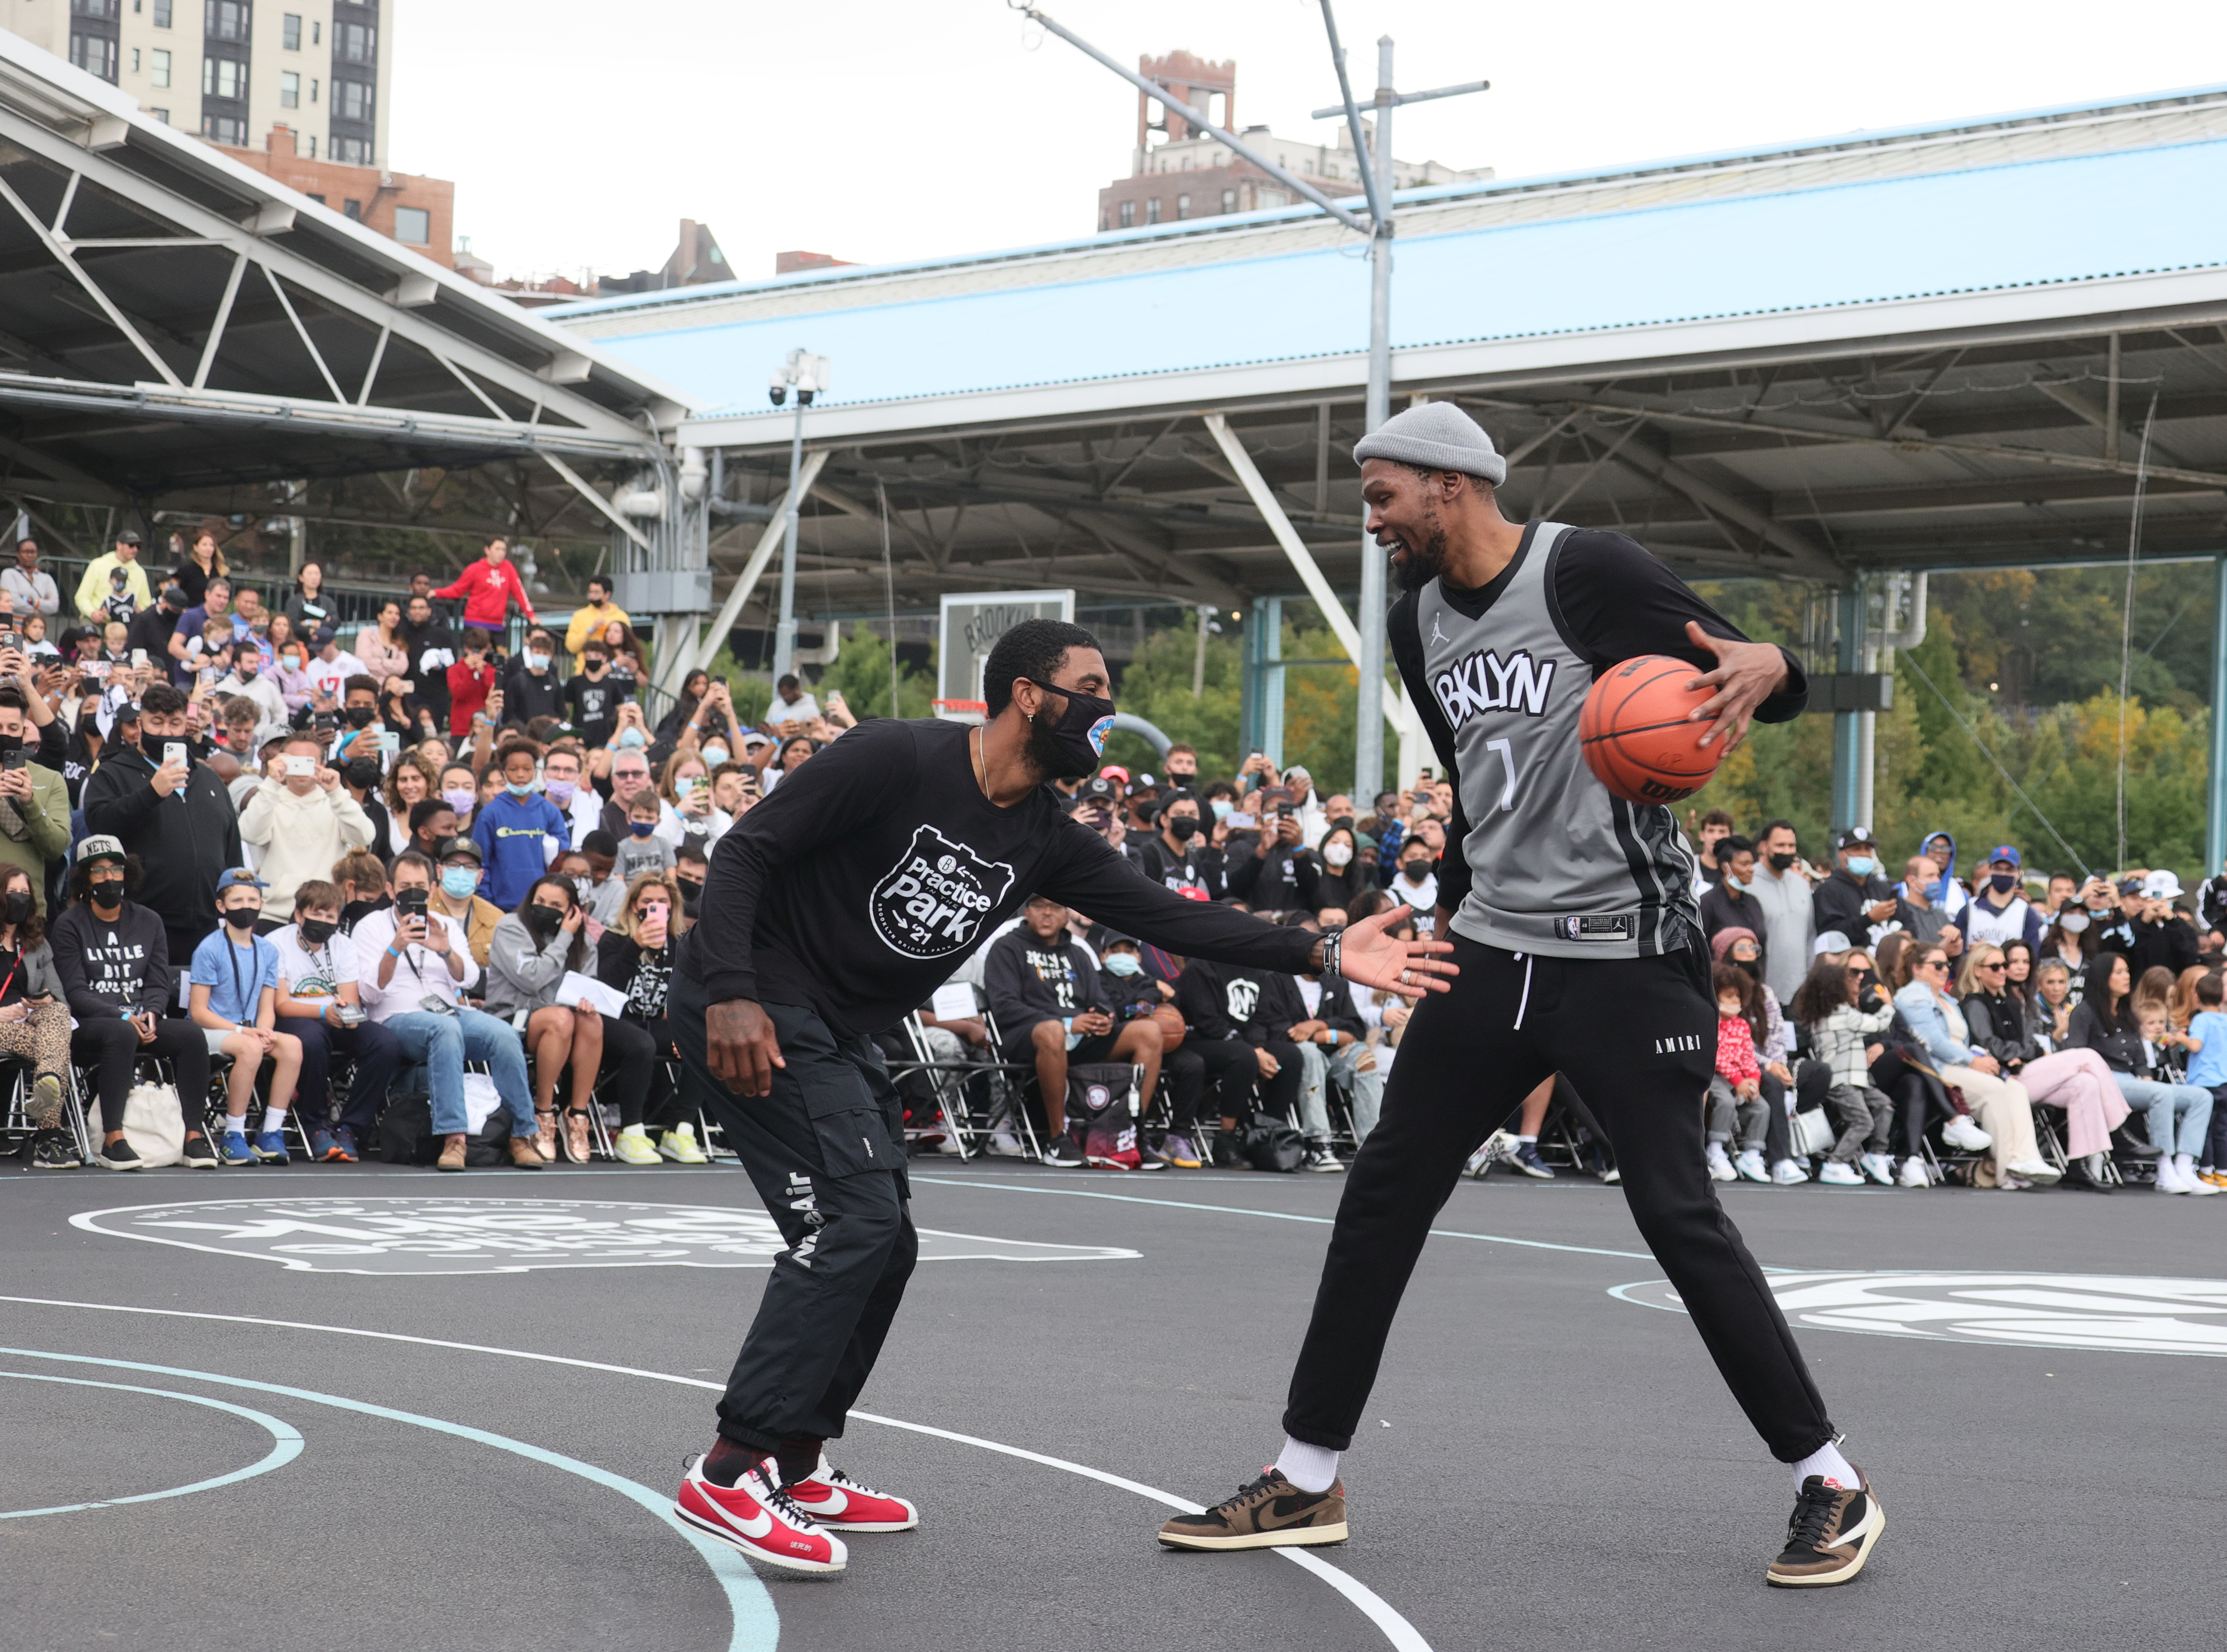 Brooklyn Nets Practice in The Park